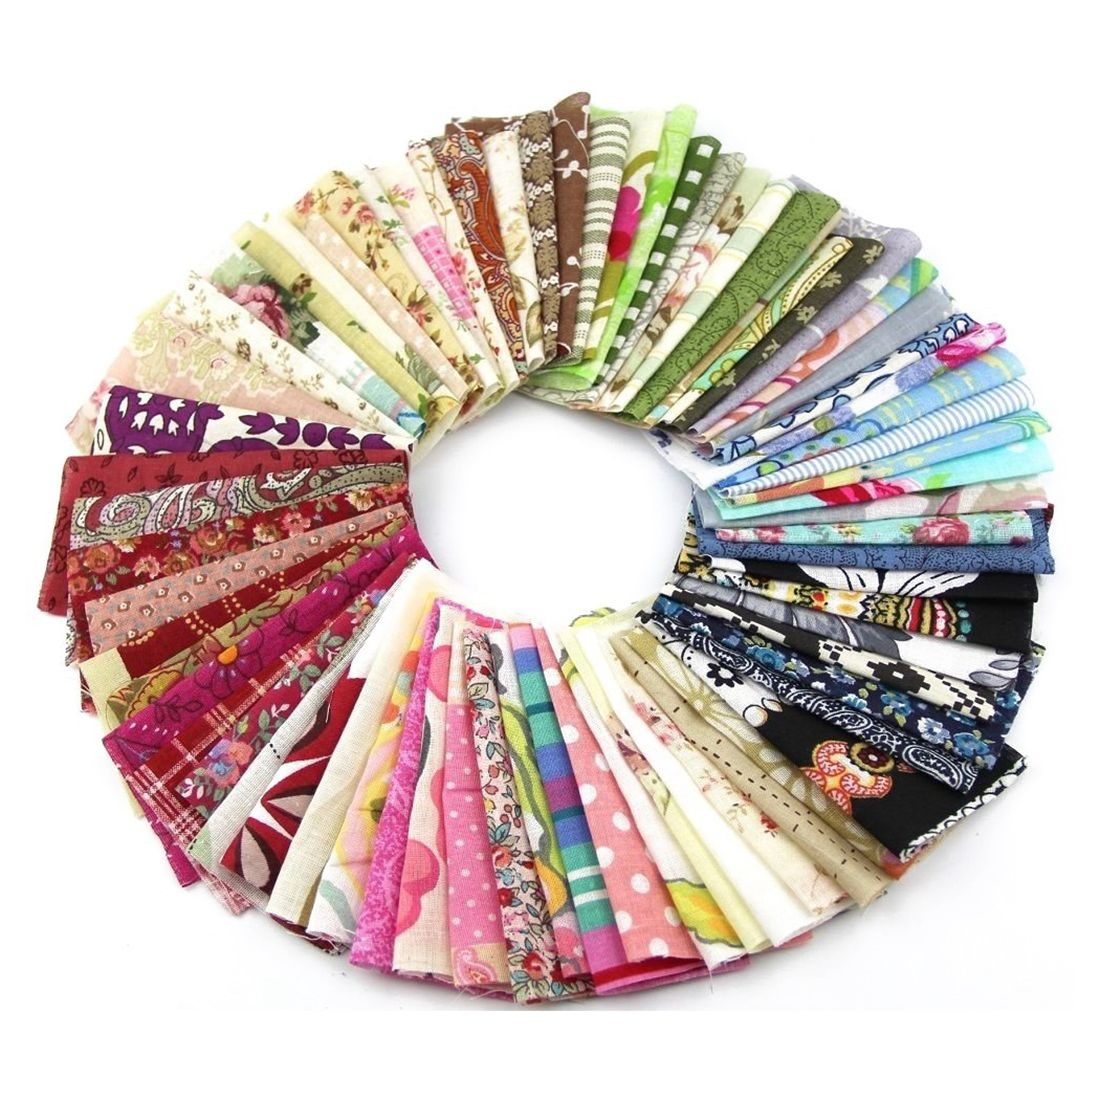 Fabric Patchwork Craft Cotton Material Batiks Mixed Squares Bundle, 10 x 10cm, 50-Pack ...